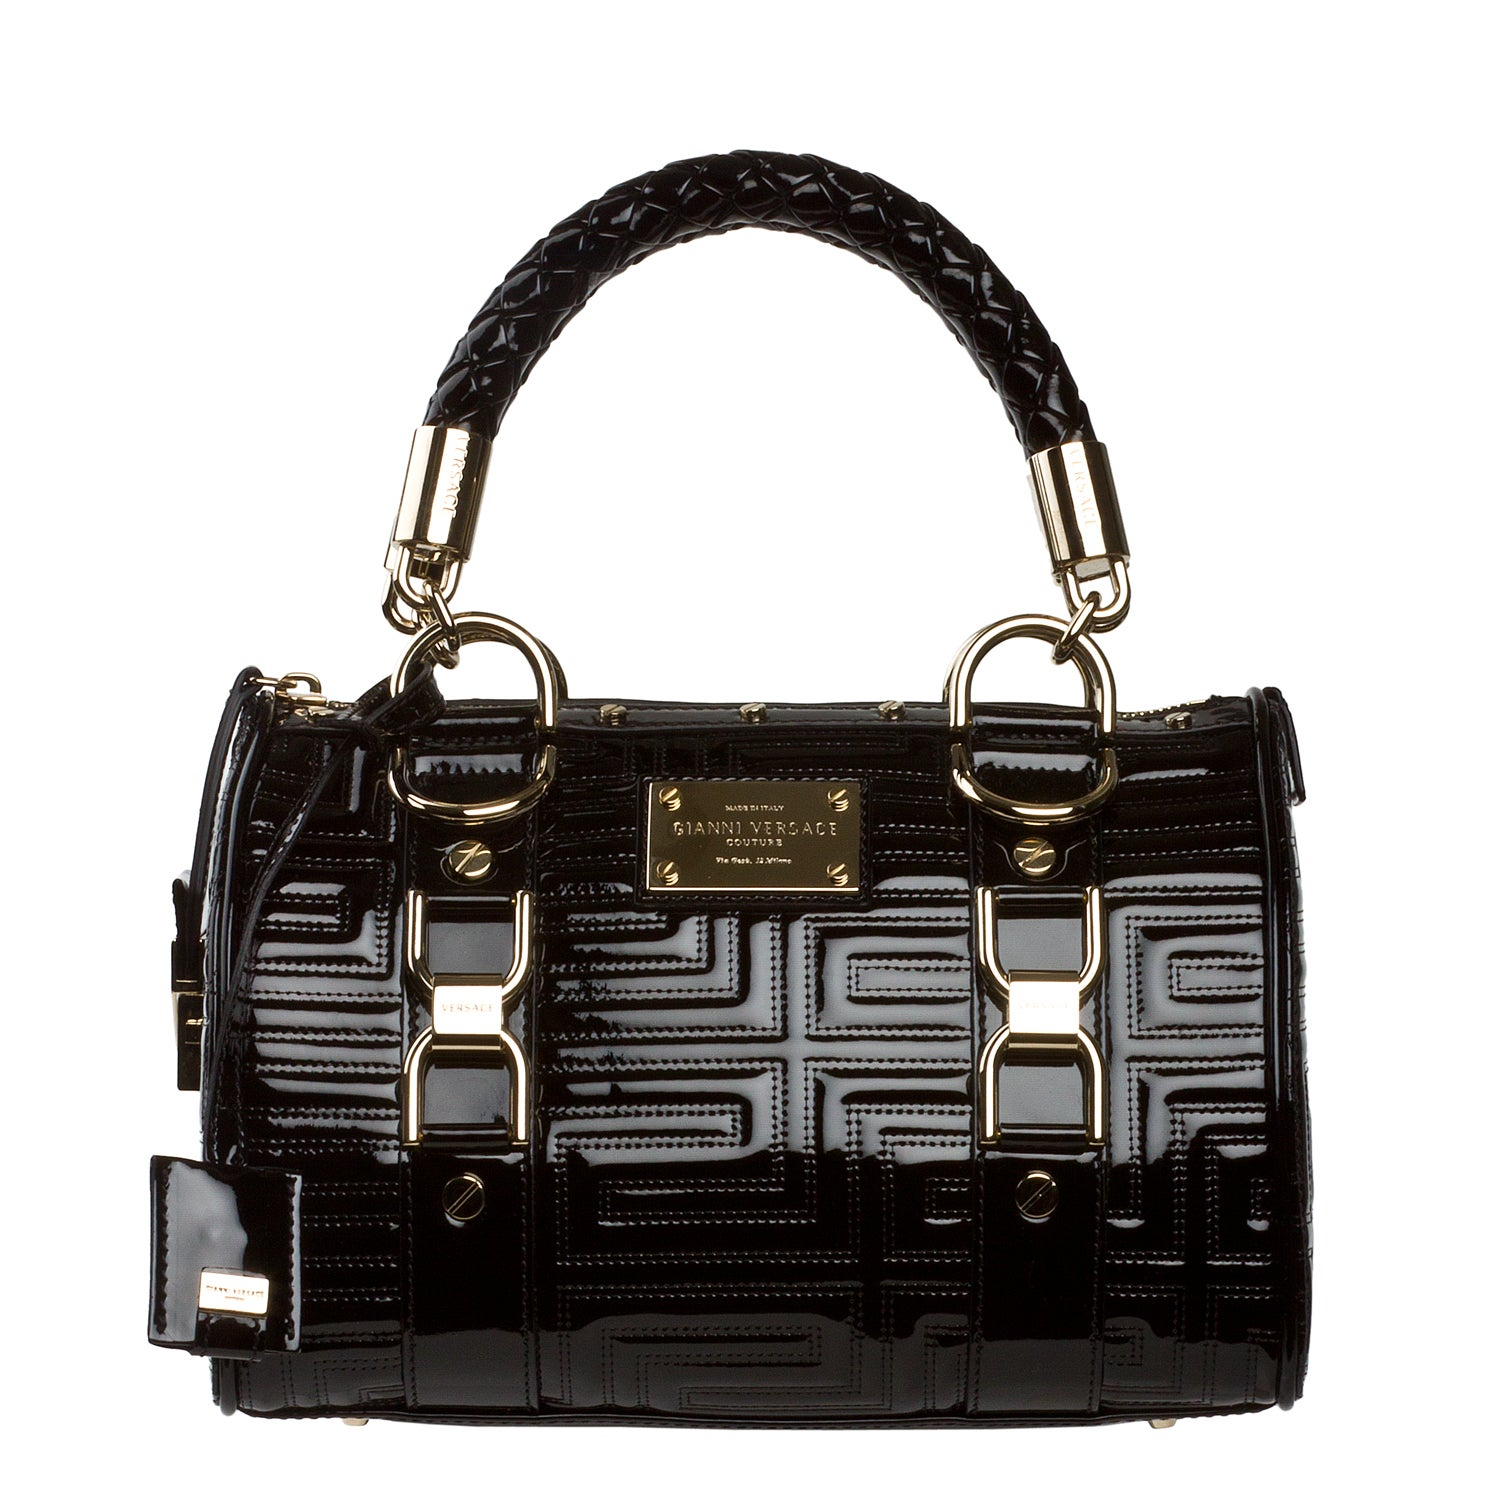 Versace Small Black Patent Leather Satchel